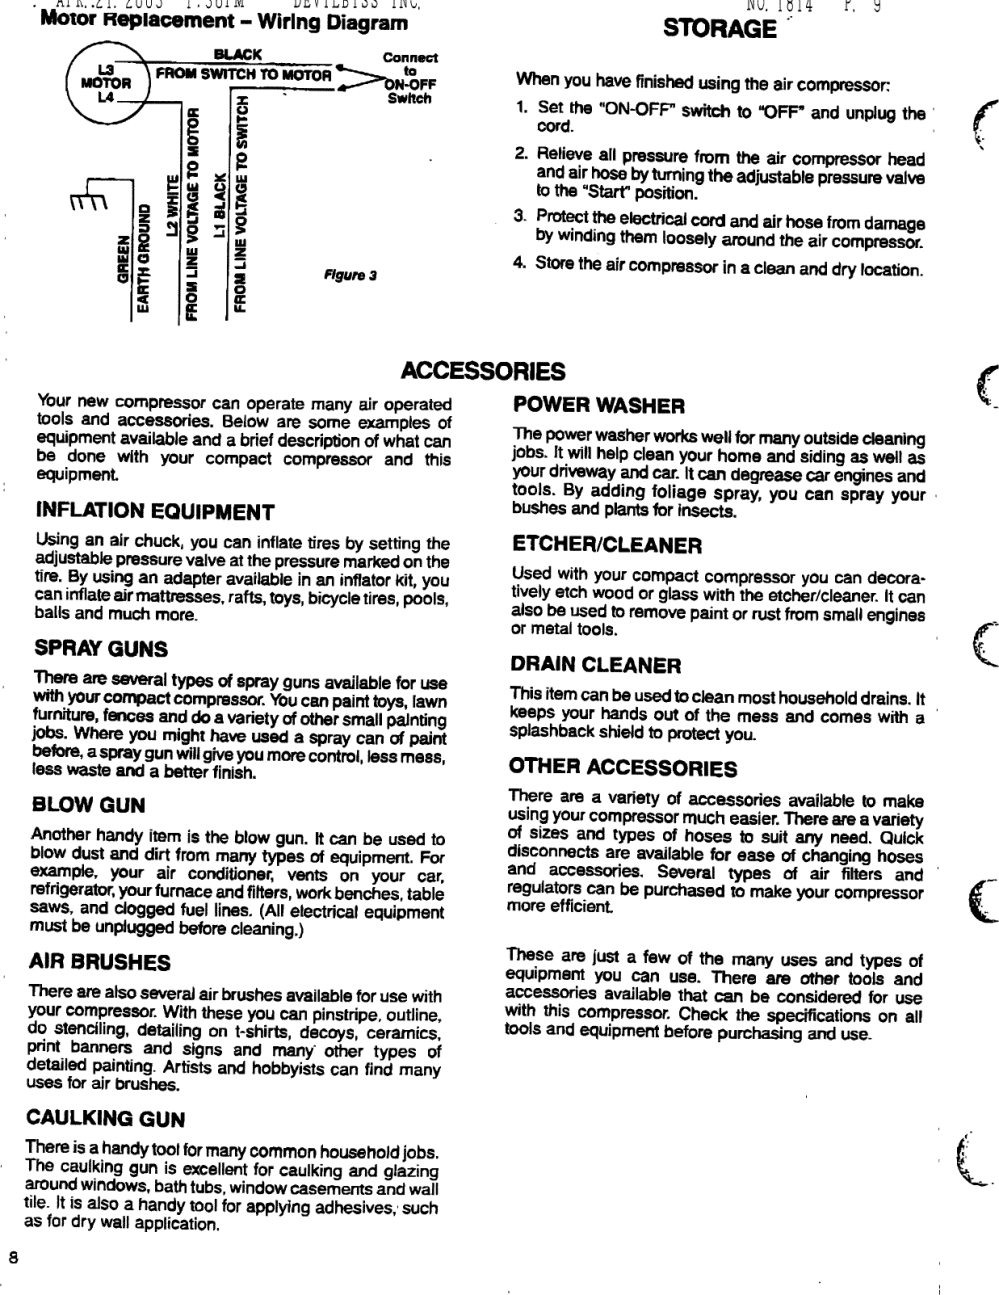 medium resolution of page 8 of 11 sears sears craftsman 919 150270 users